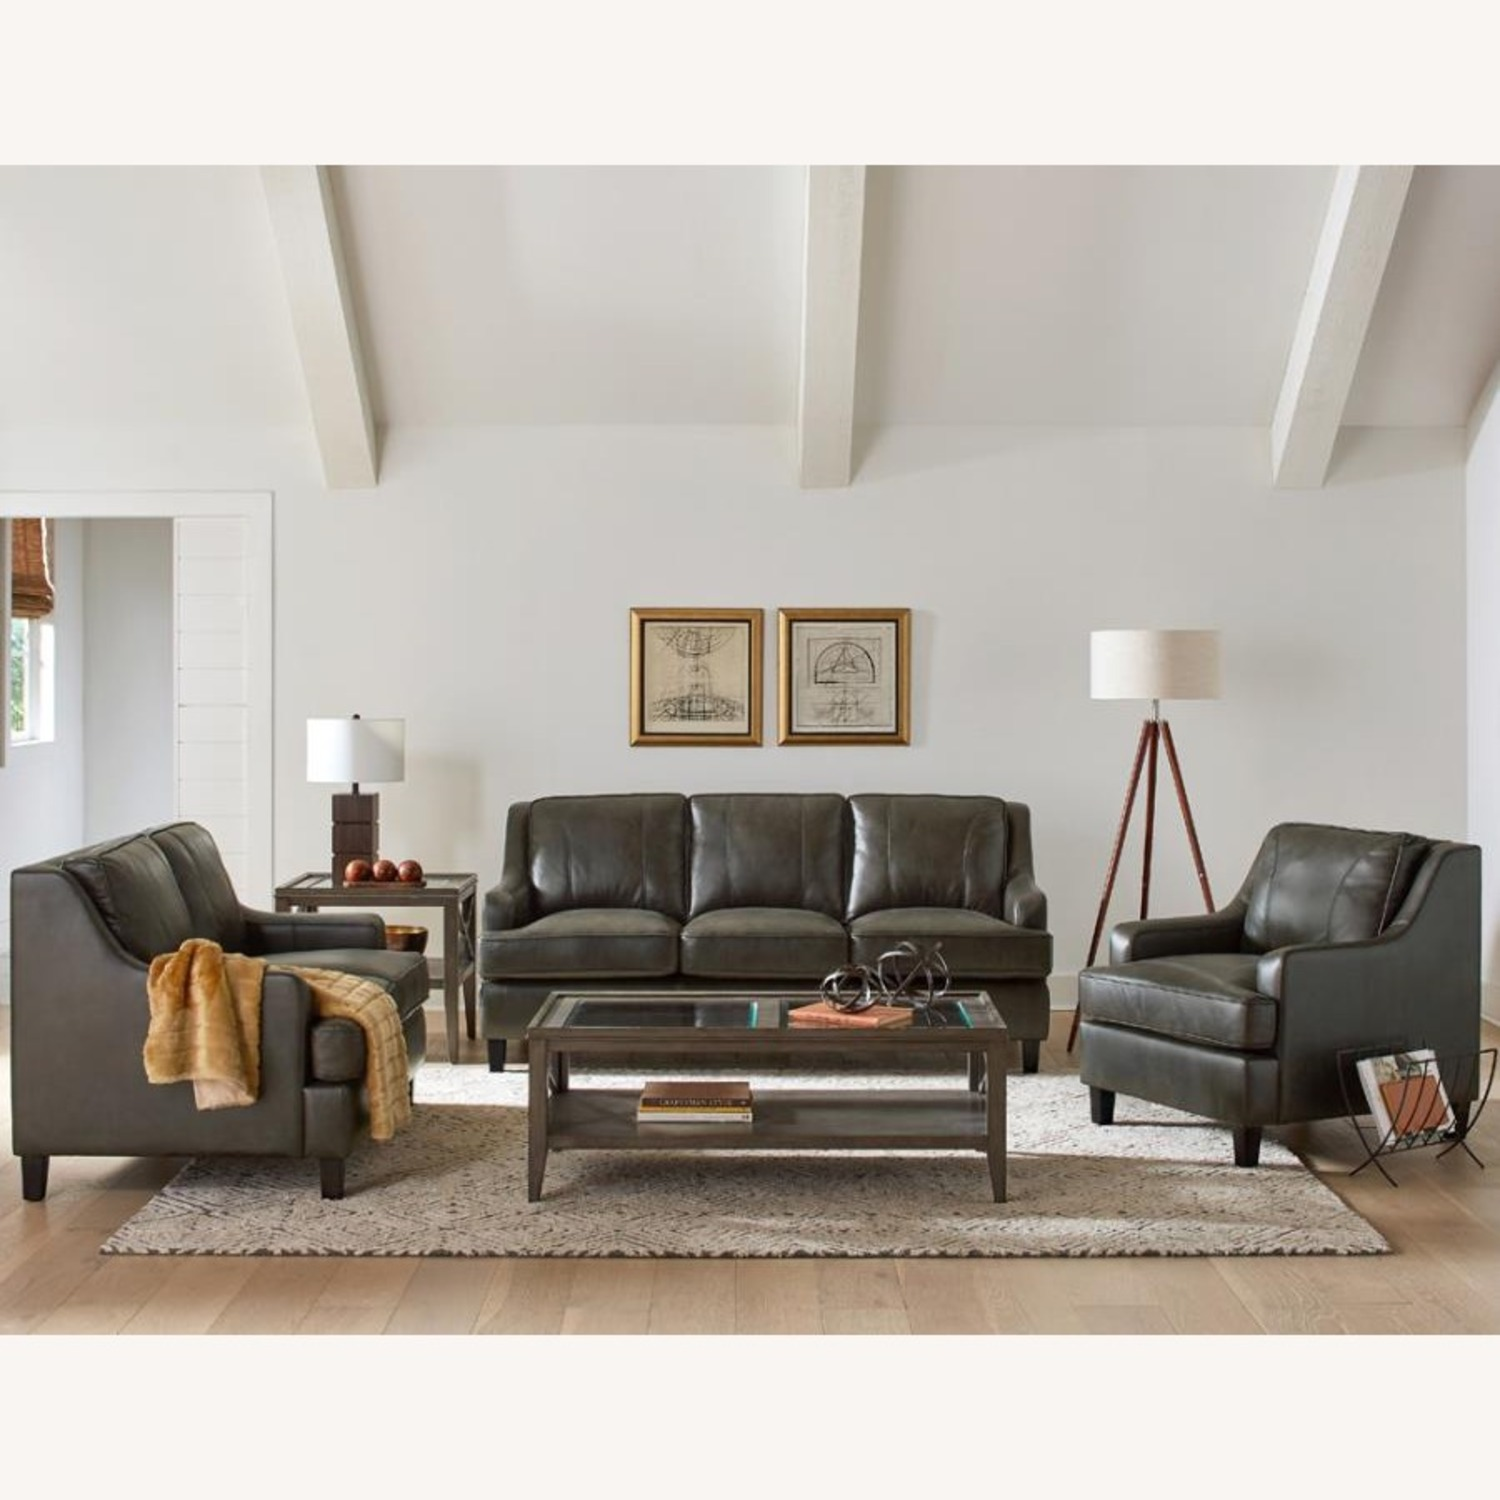 Sofa In Grey Leatherette W/ Stitching Details - image-2